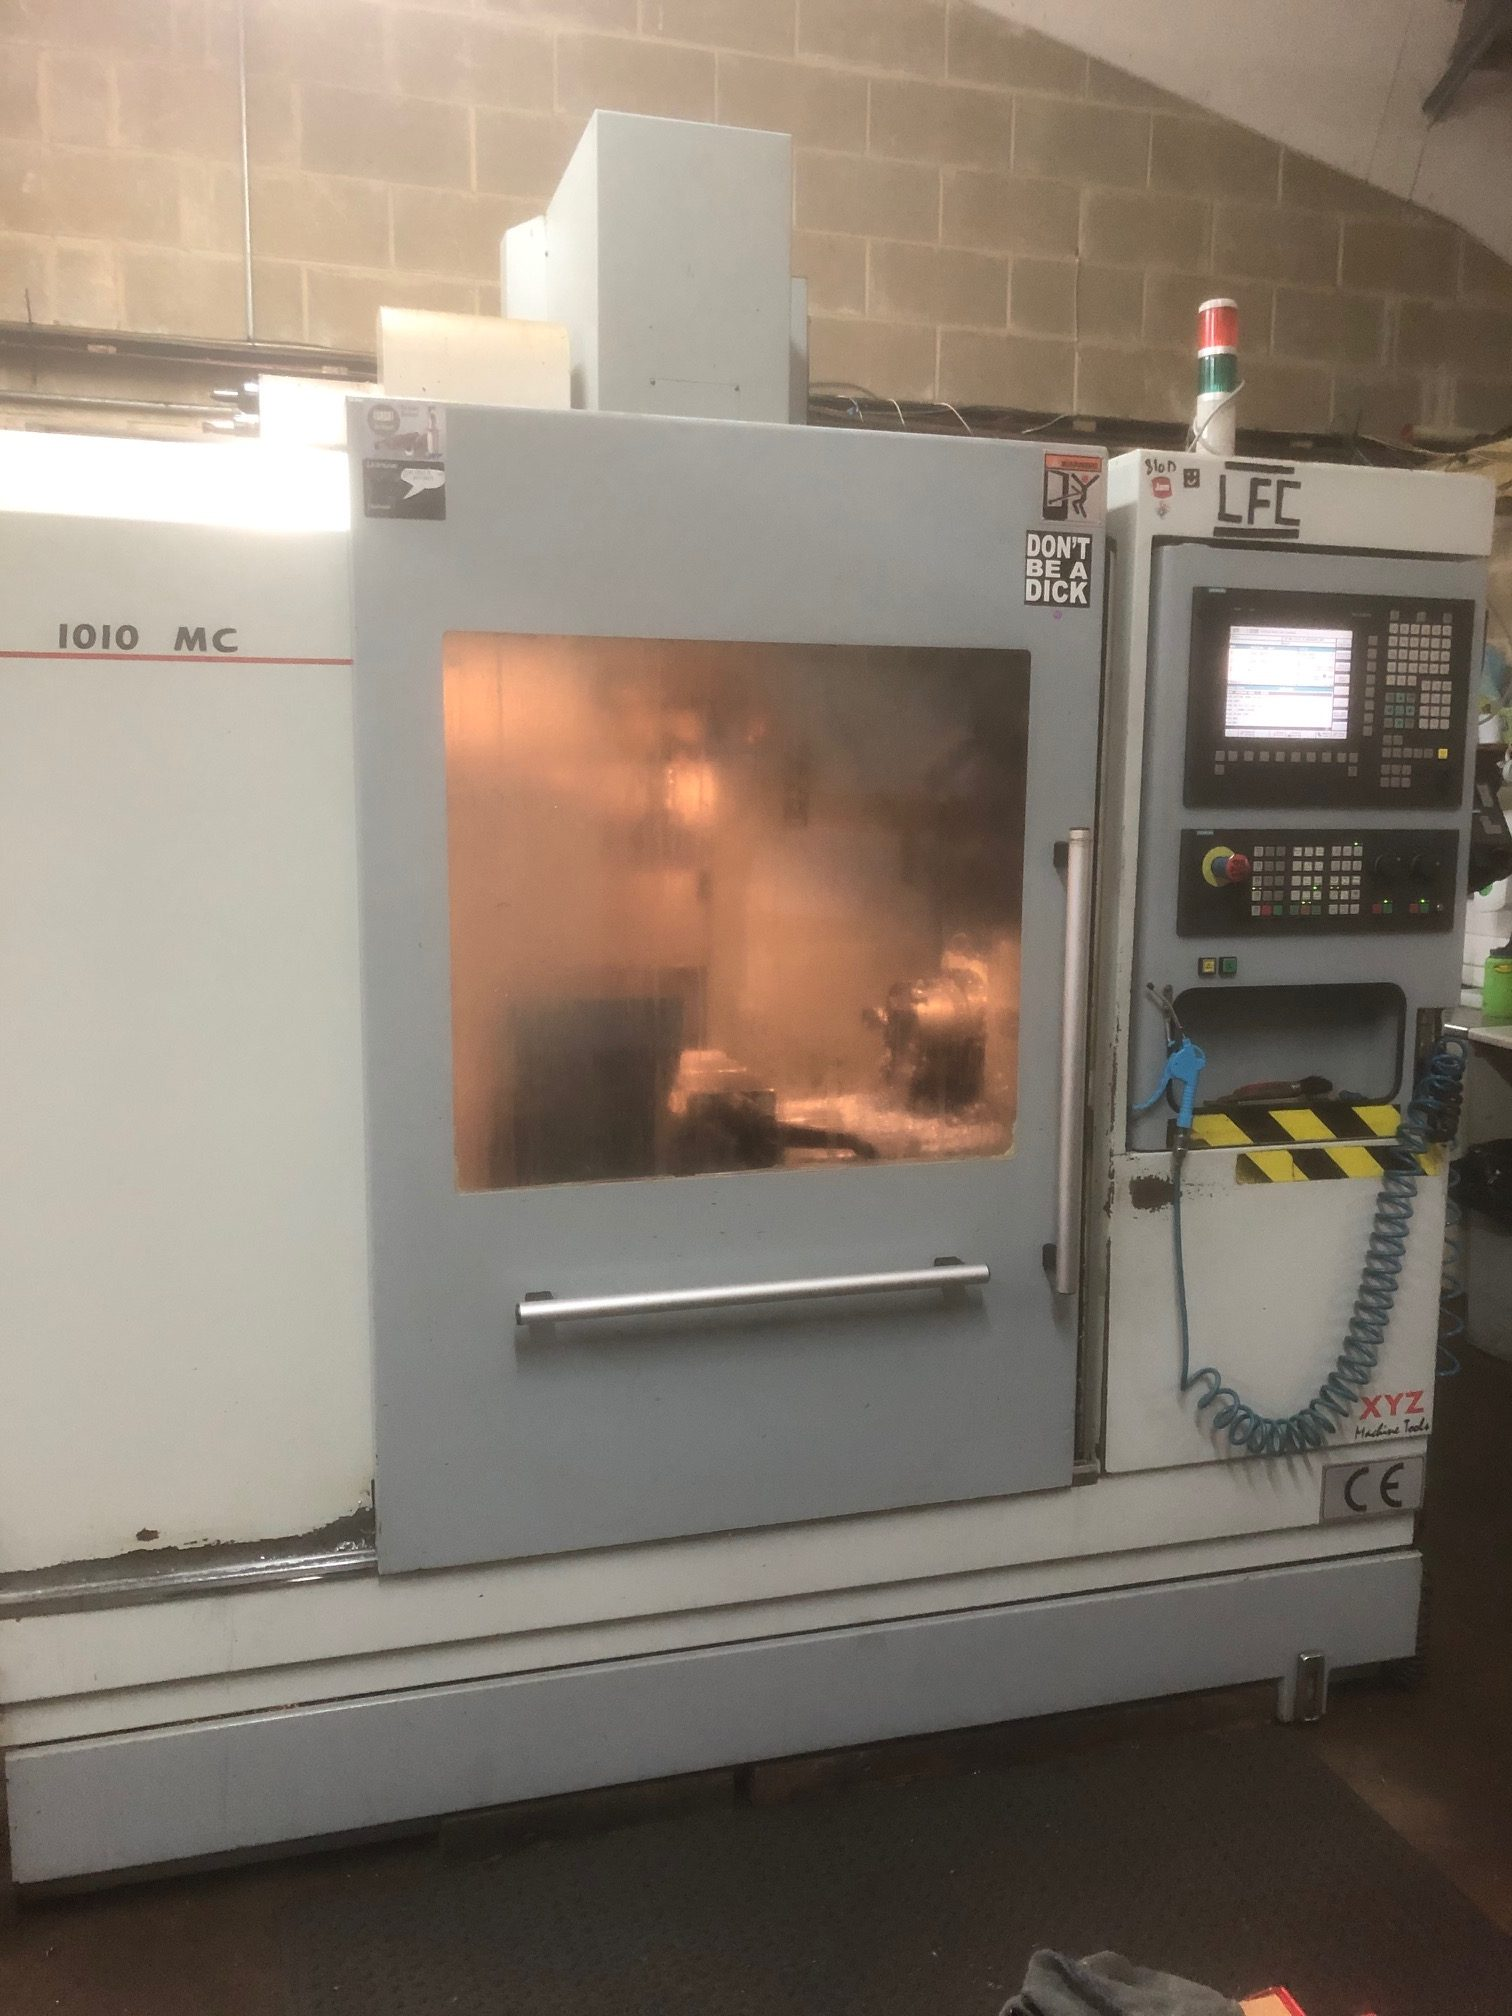 vertical milling centre milling machine from Fort precision